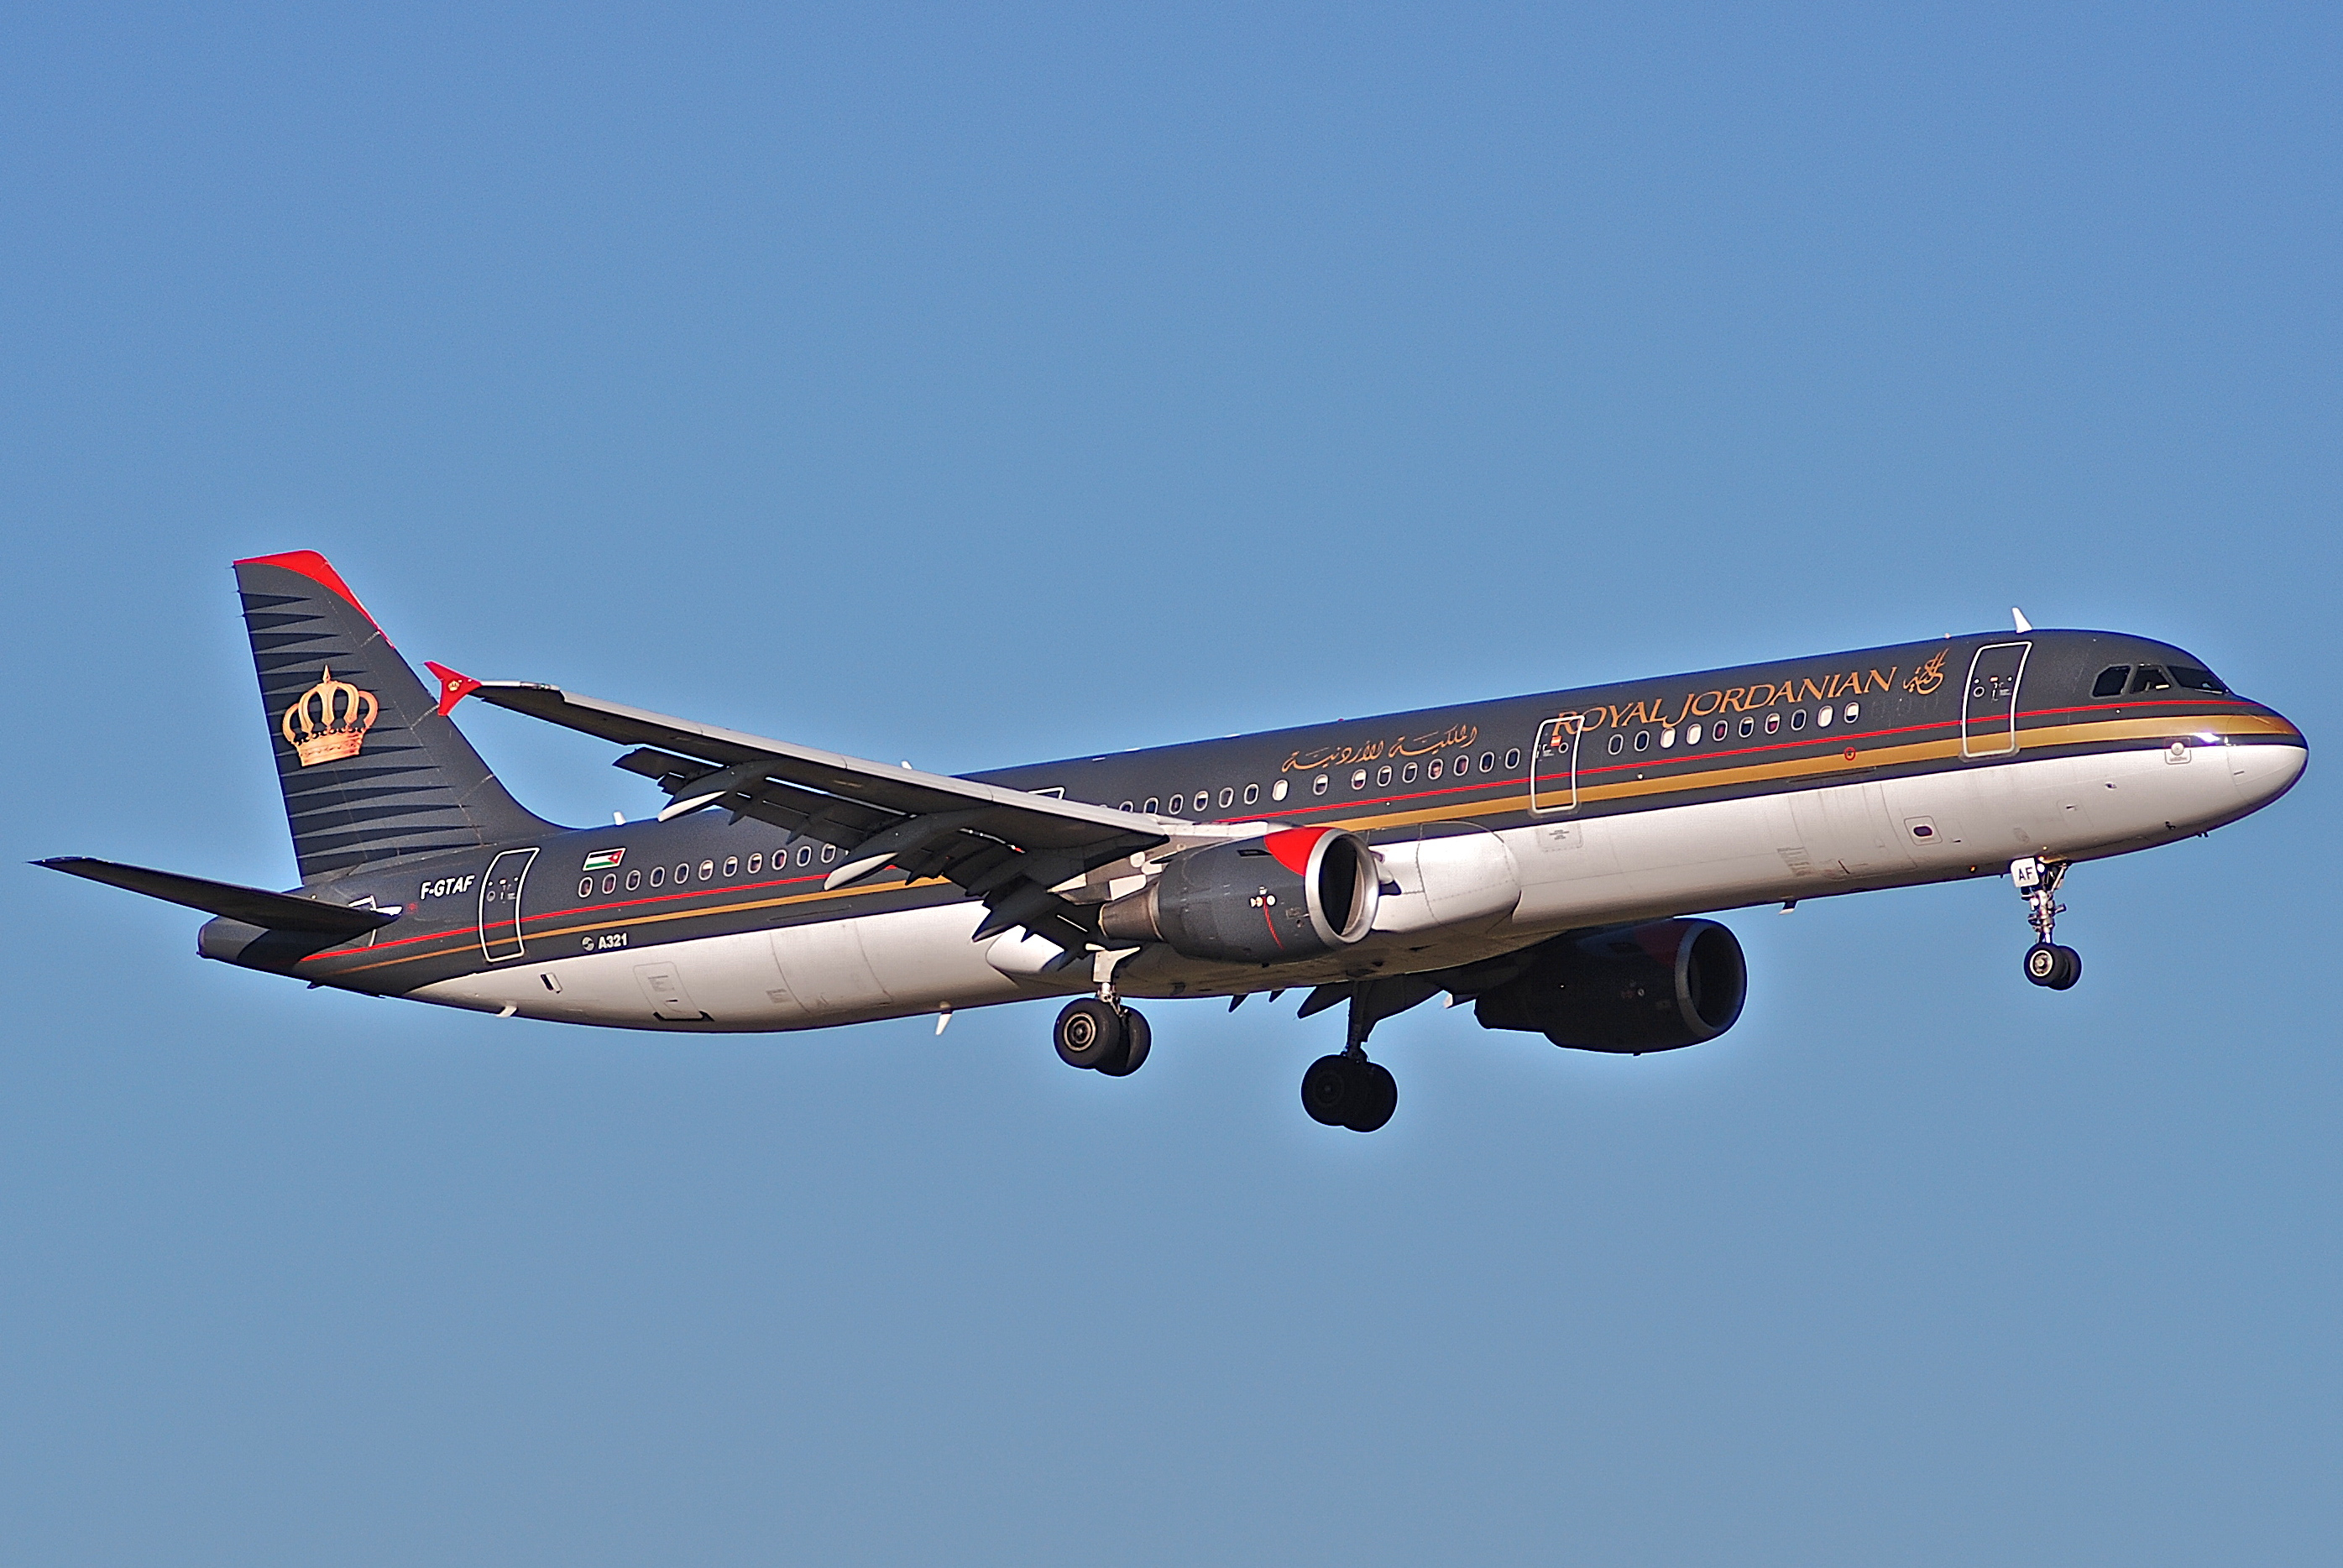 File:Royal Jordanian Airlines Airbus A321-211, F-GTAF@ZRH,13.01.2007-446hl  - Flickr - Aero Icarus.jpg - Wikimedia Commons